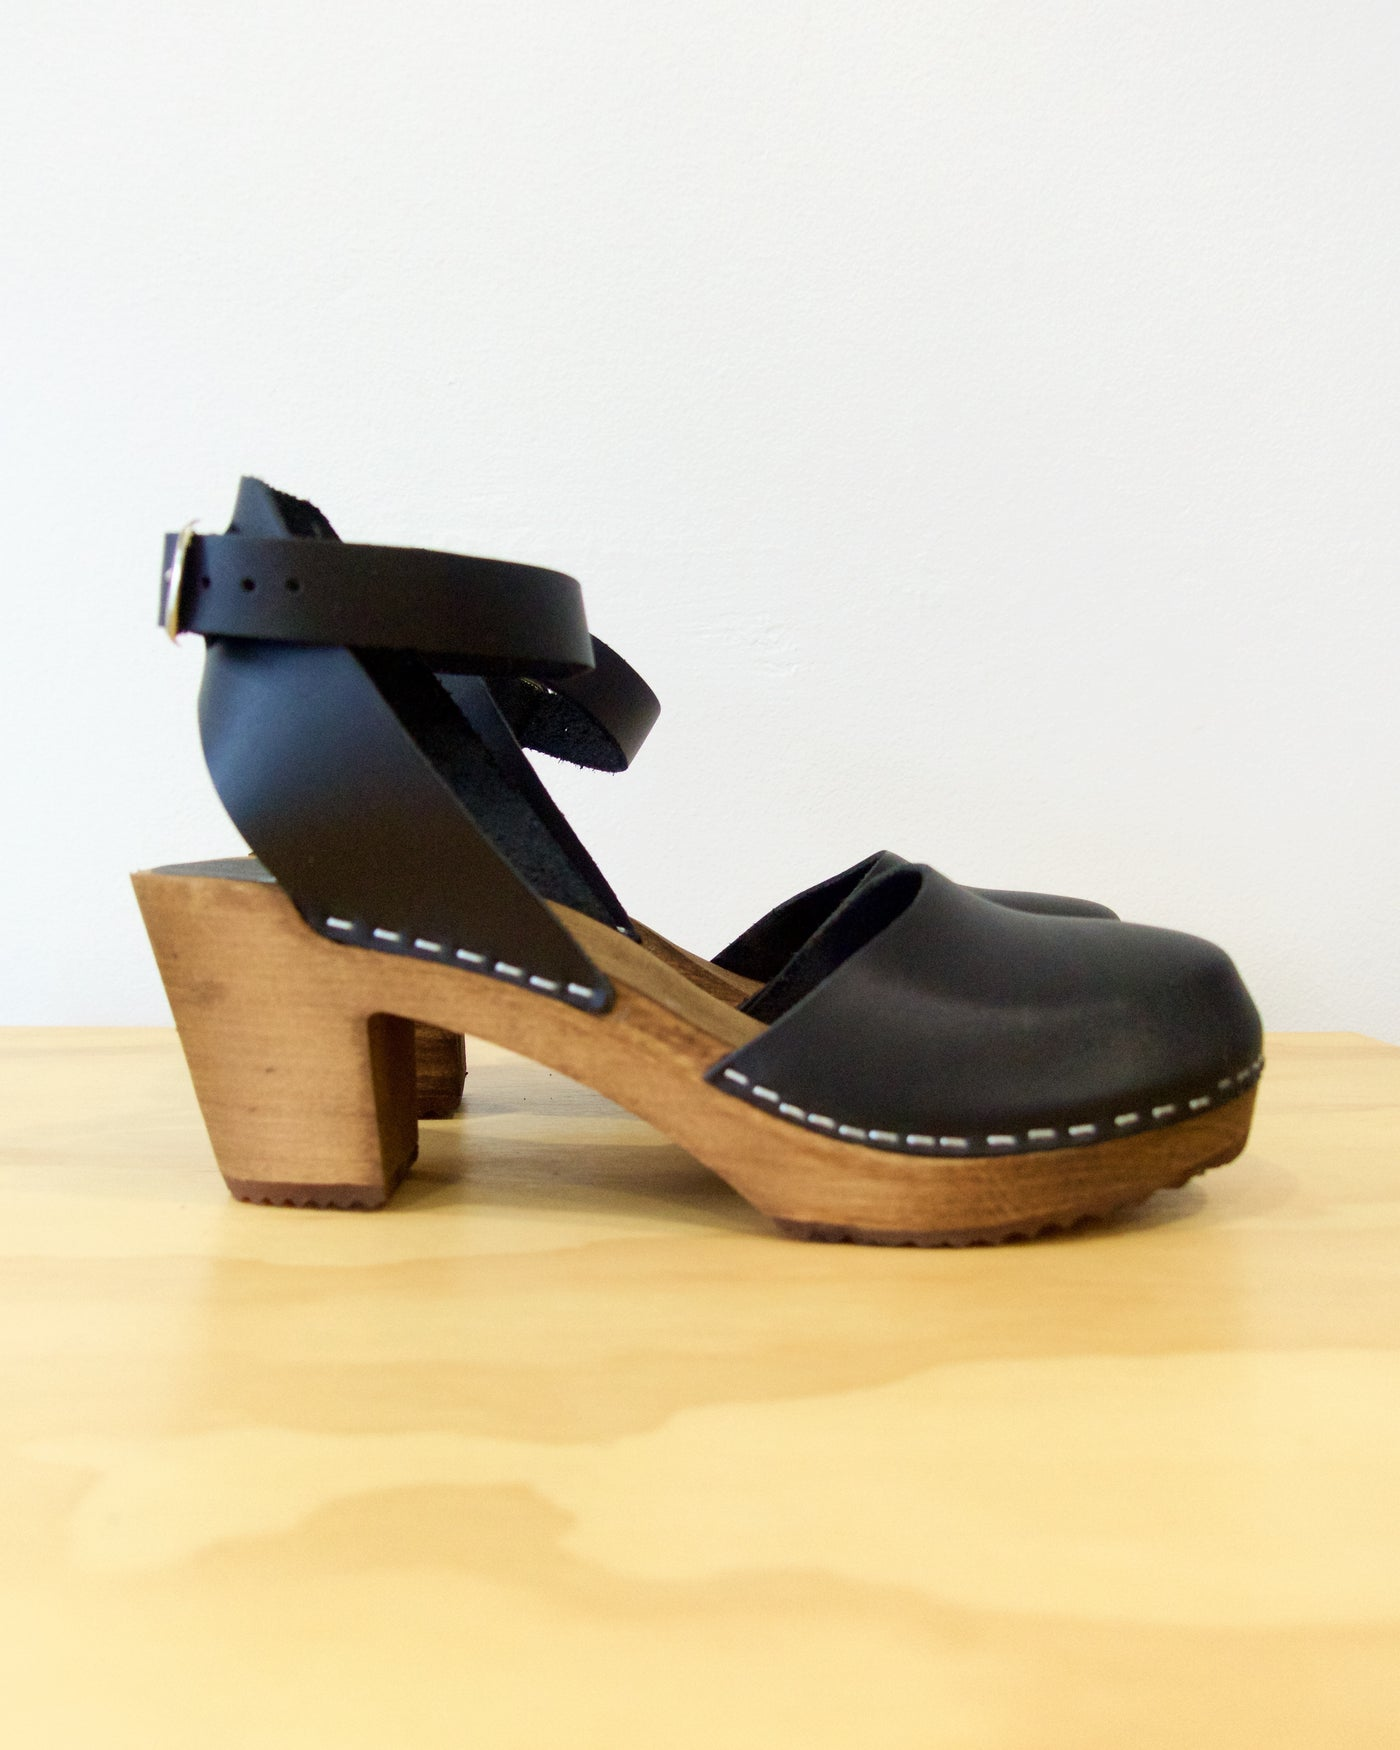 Ester Clog High - Black With Brown Base - LAST SIZE (36)!